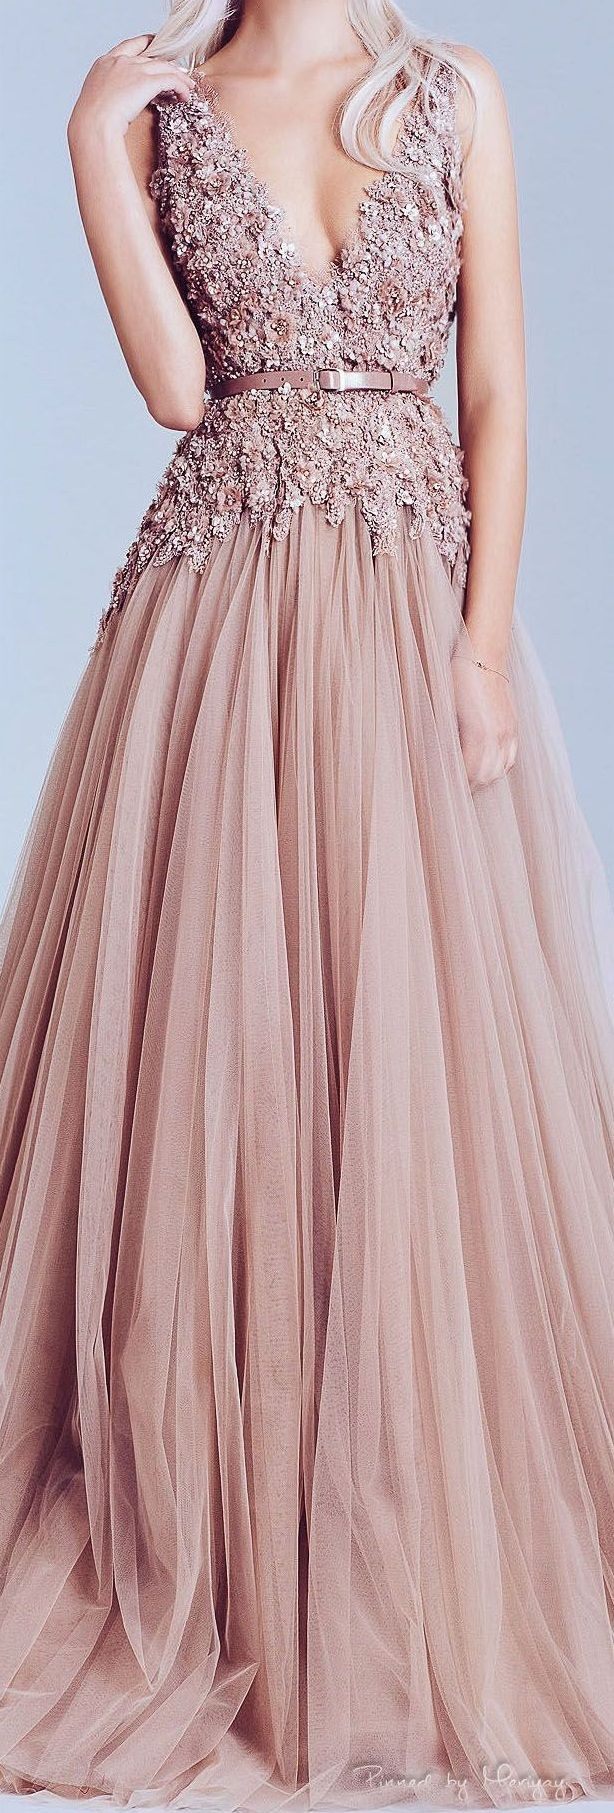 best divine dresses images on pinterest ball gown evening